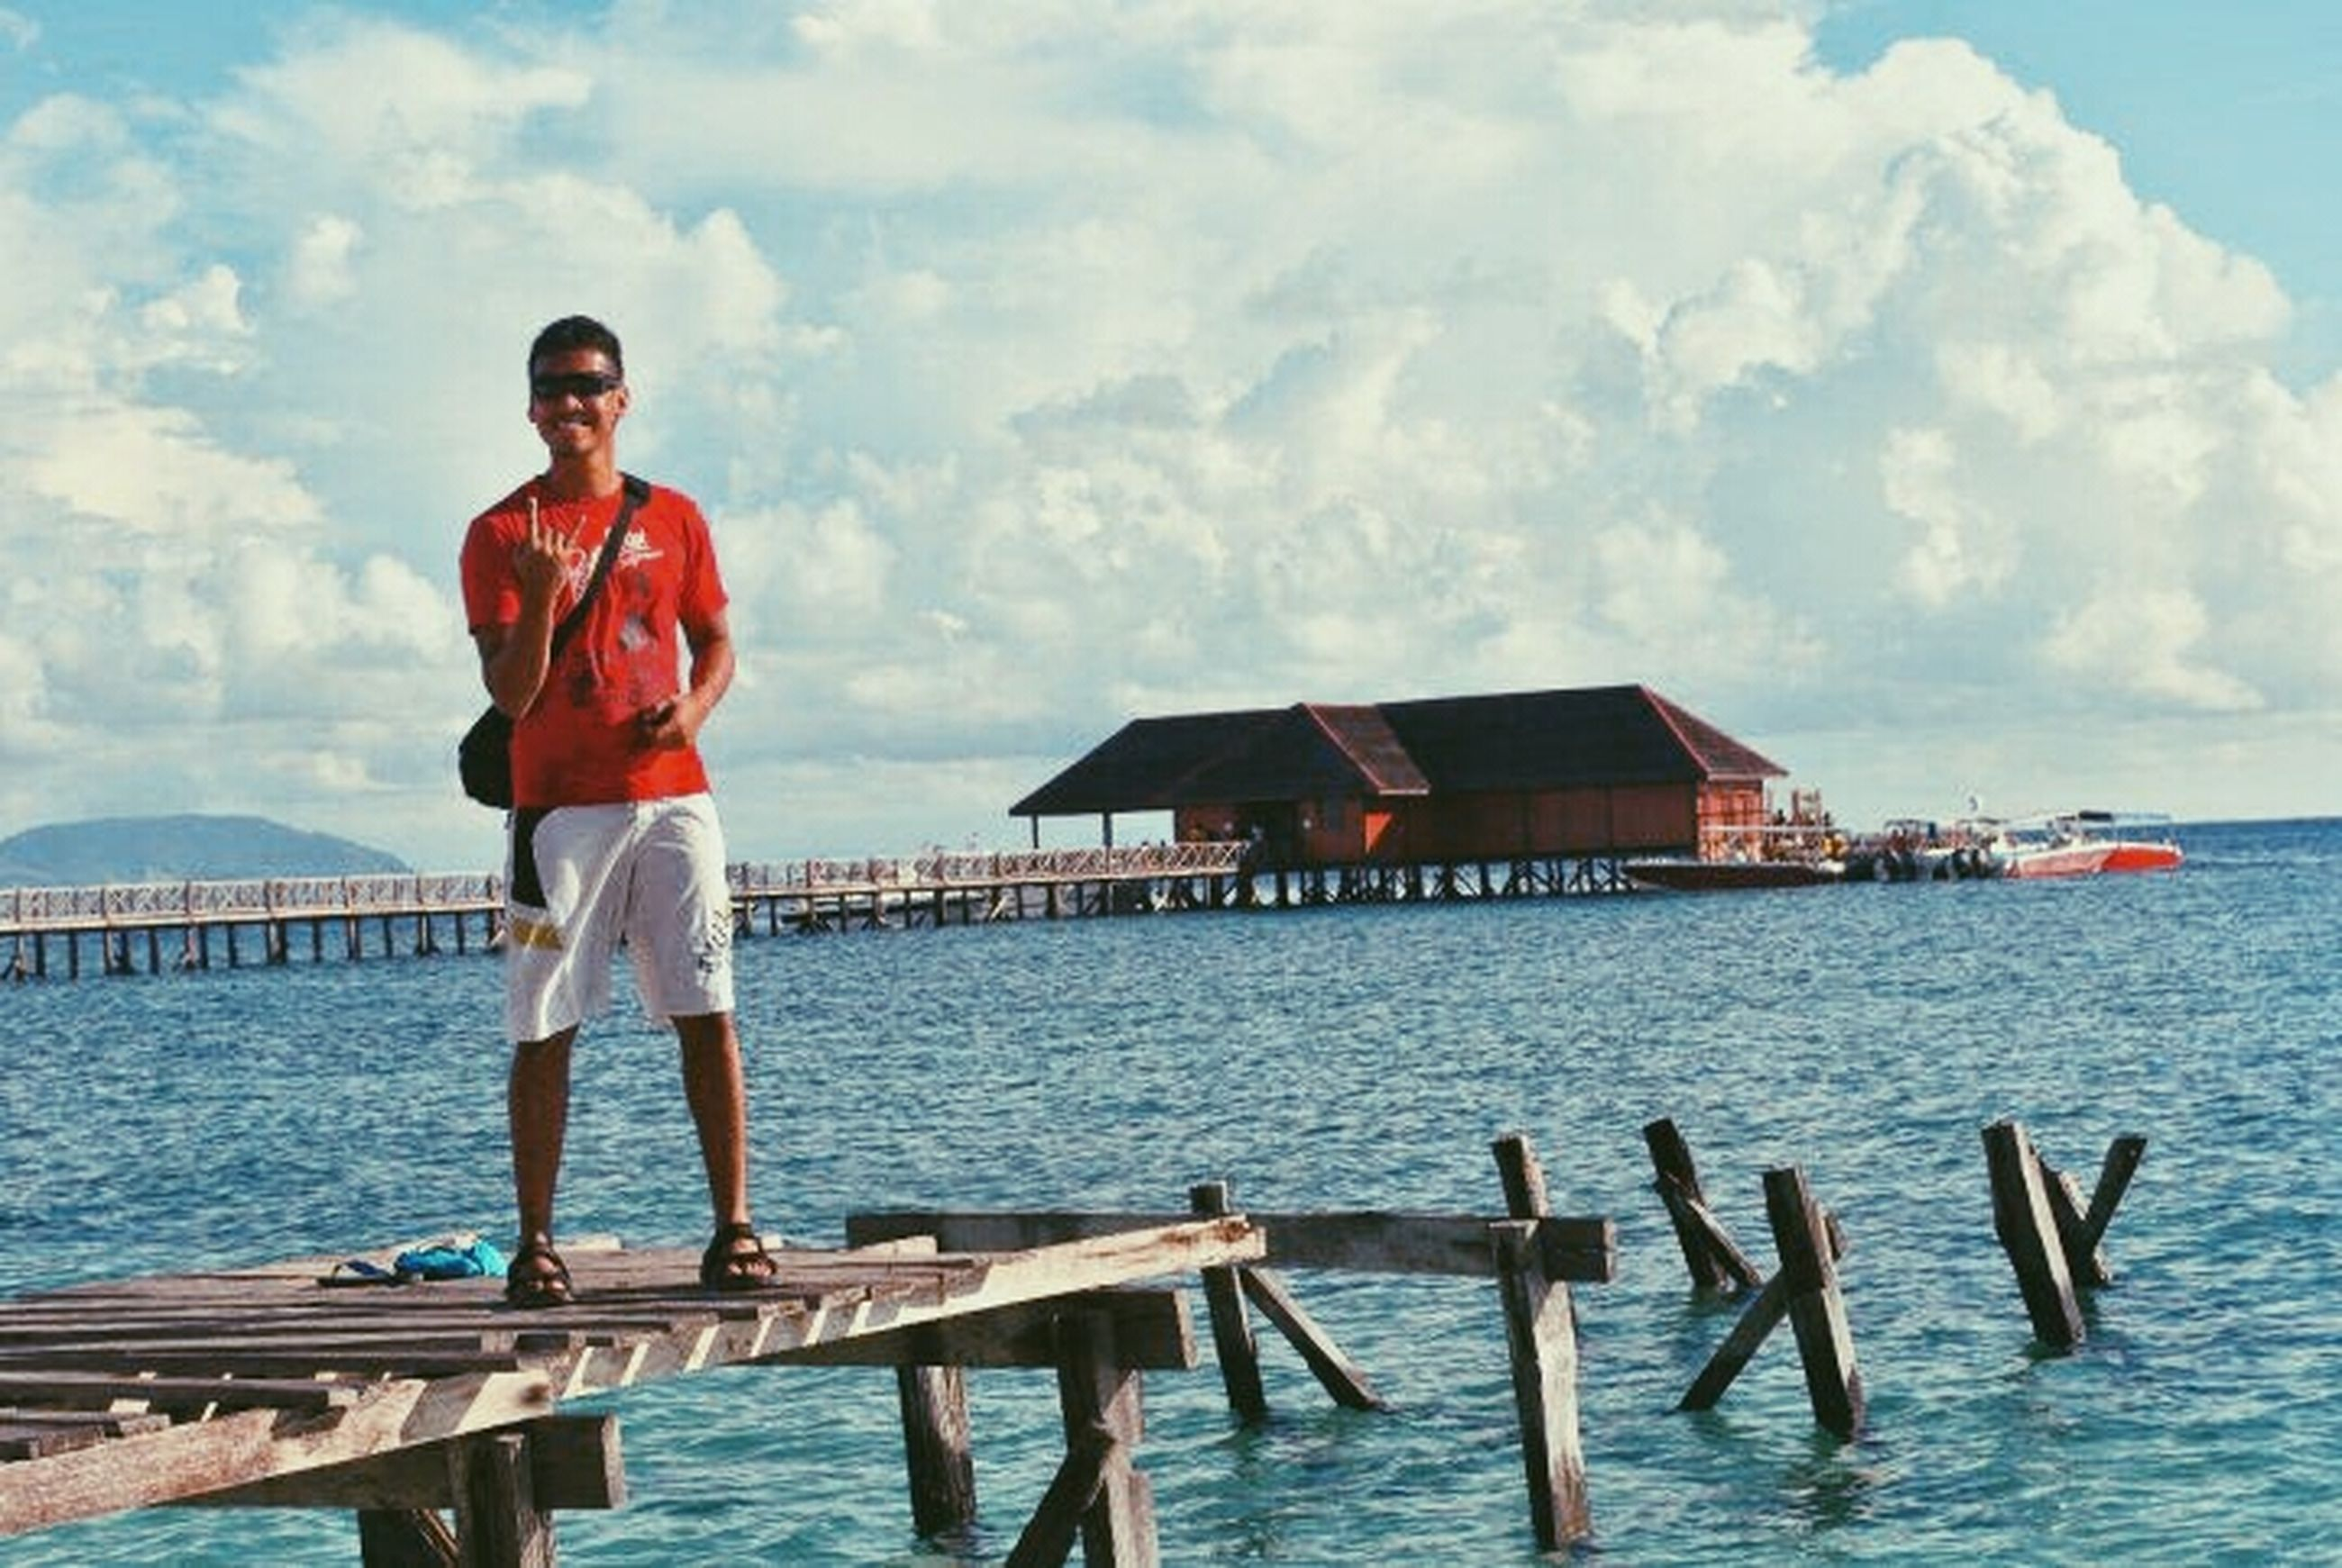 water, pier, standing, casual clothing, sea, lifestyles, sky, leisure activity, built structure, full length, wood - material, person, three quarter length, railing, nautical vessel, waterfront, young adult, nature